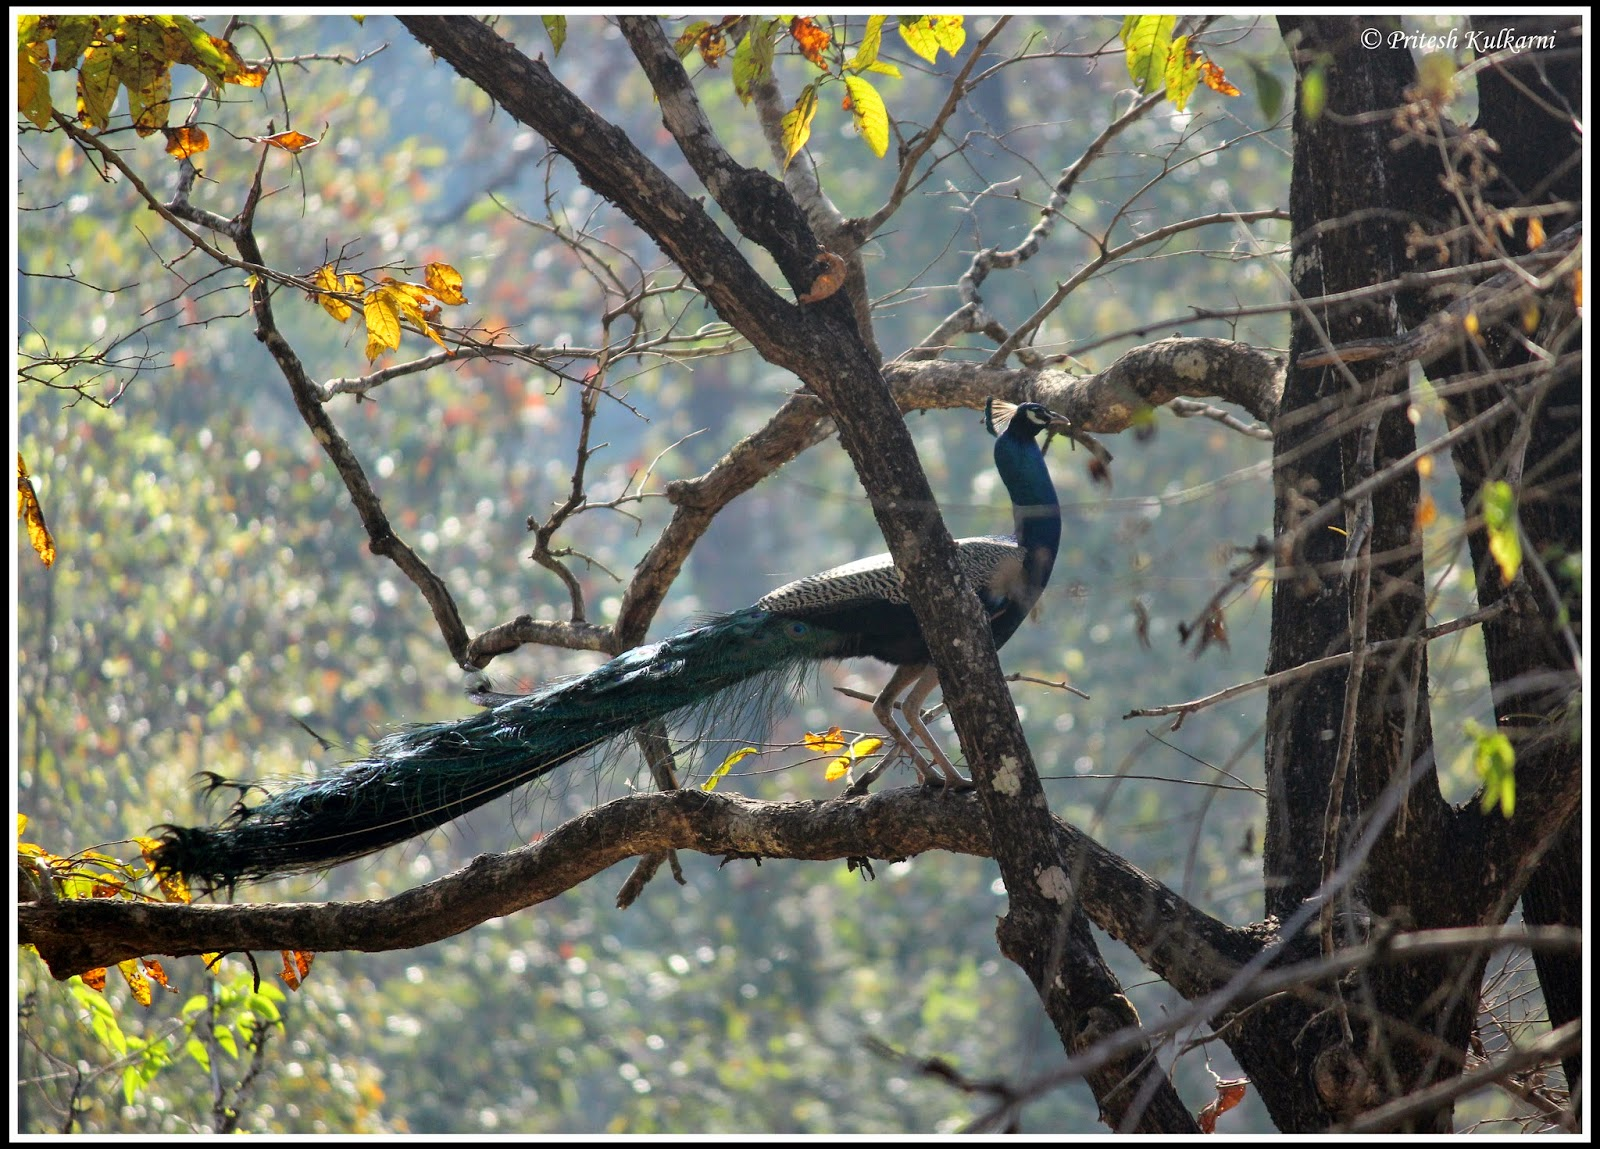 Peacock at Bhadra WLS